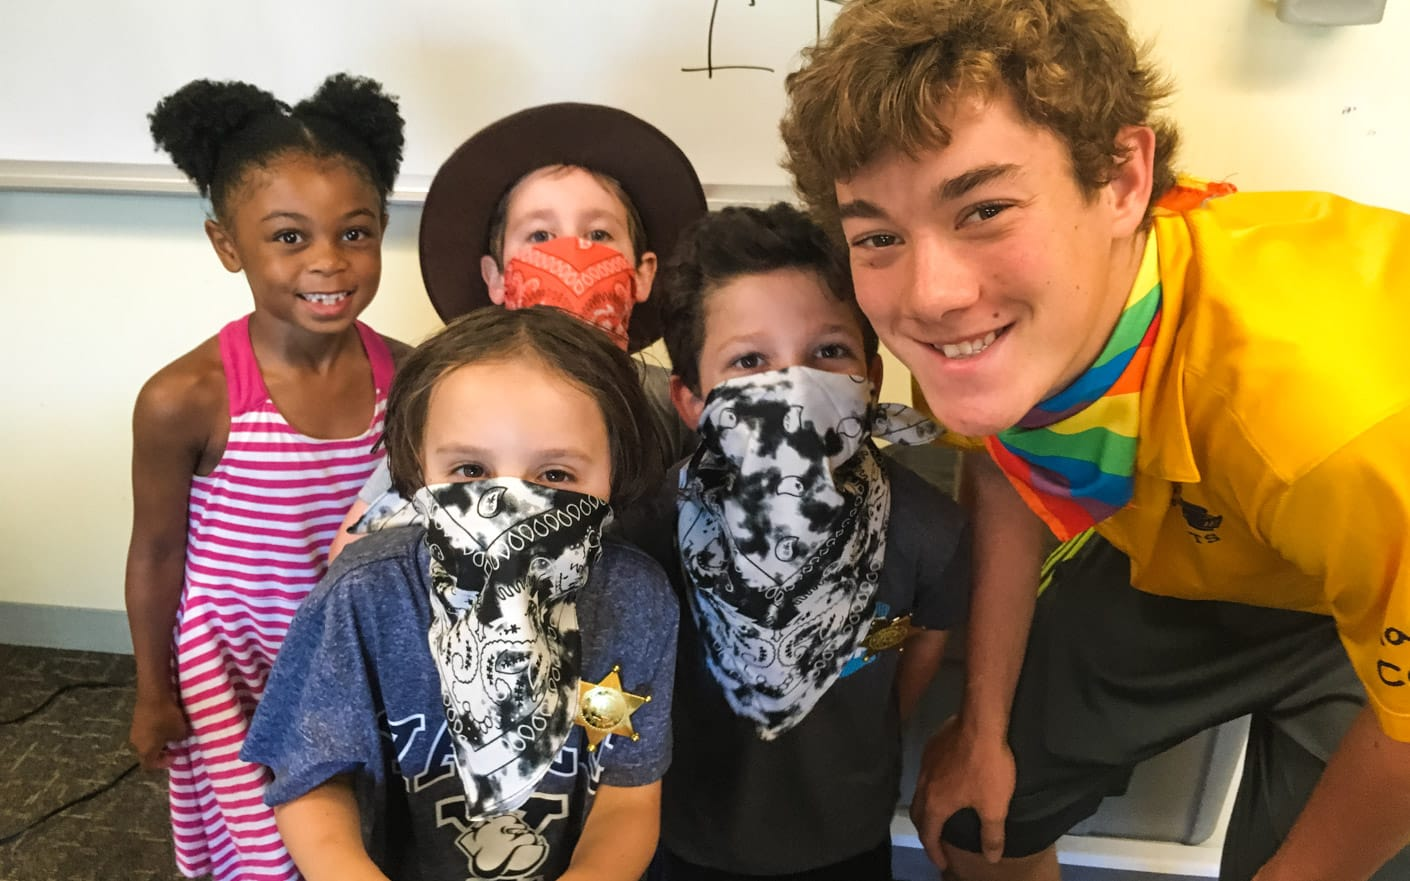 Staff and campers wearing masks